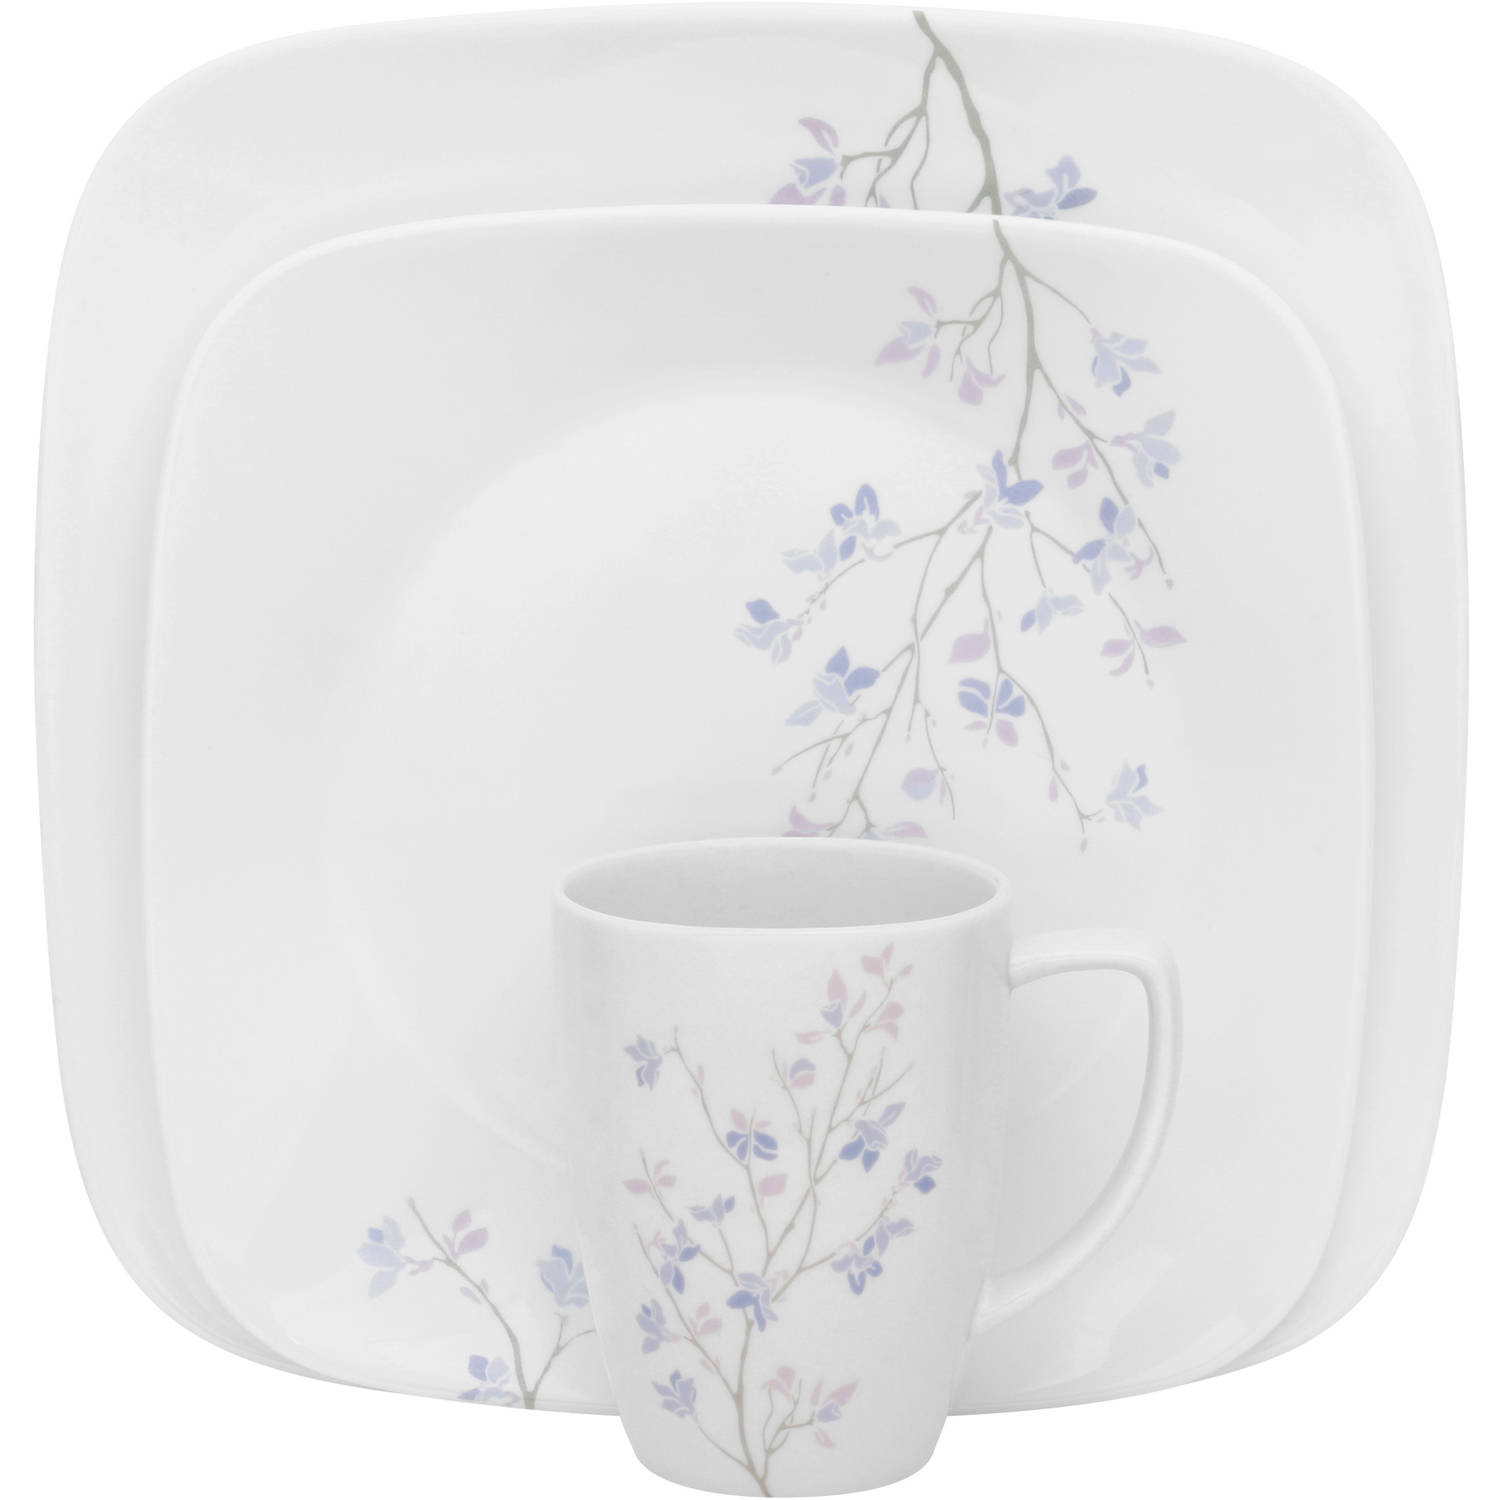 Astounding Corelle Square Dishes Gallery Best Image Engine  sc 1 st  Adobe Title & Corelle Square Round 16 Piece Dinnerware Set Cherry Blossom - Round ...